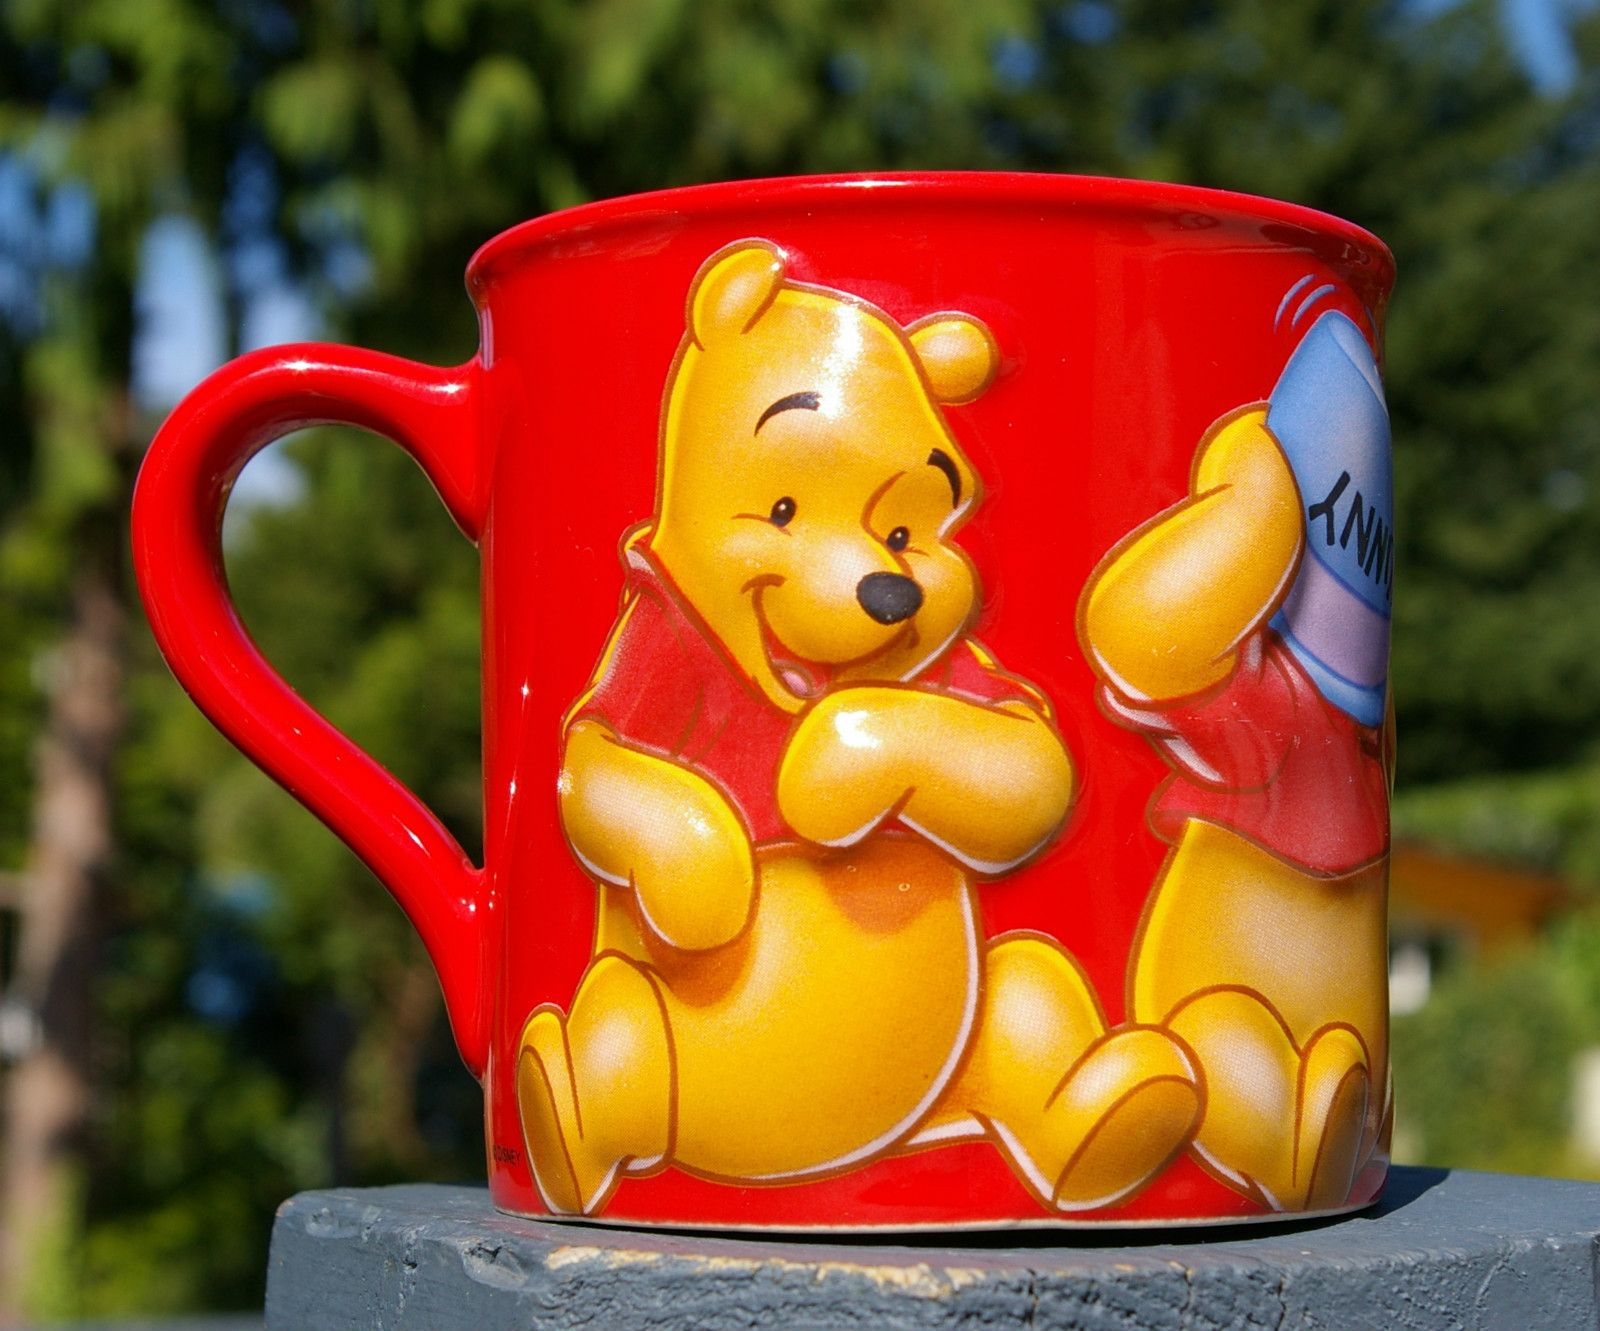 Walt Disney Winnie the Pooh Coffee Mug Red Four Poses Blue Hunny Pot